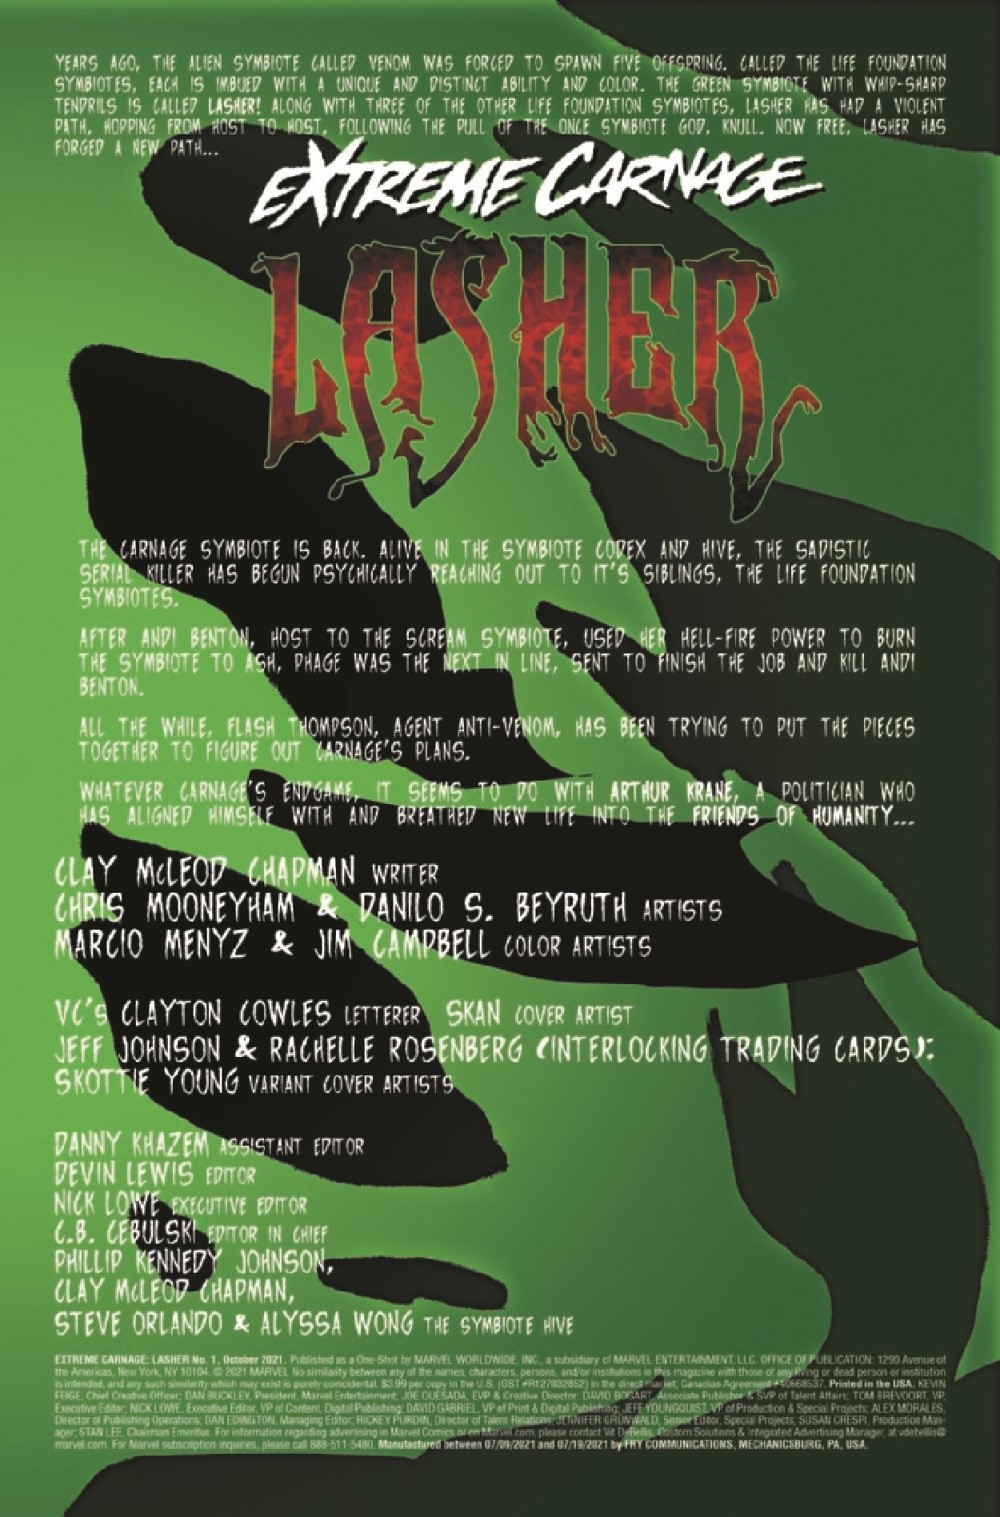 EXTCARNLA2021001_Preview-2 ComicList Previews: EXTREME CARNAGE LASHER #1